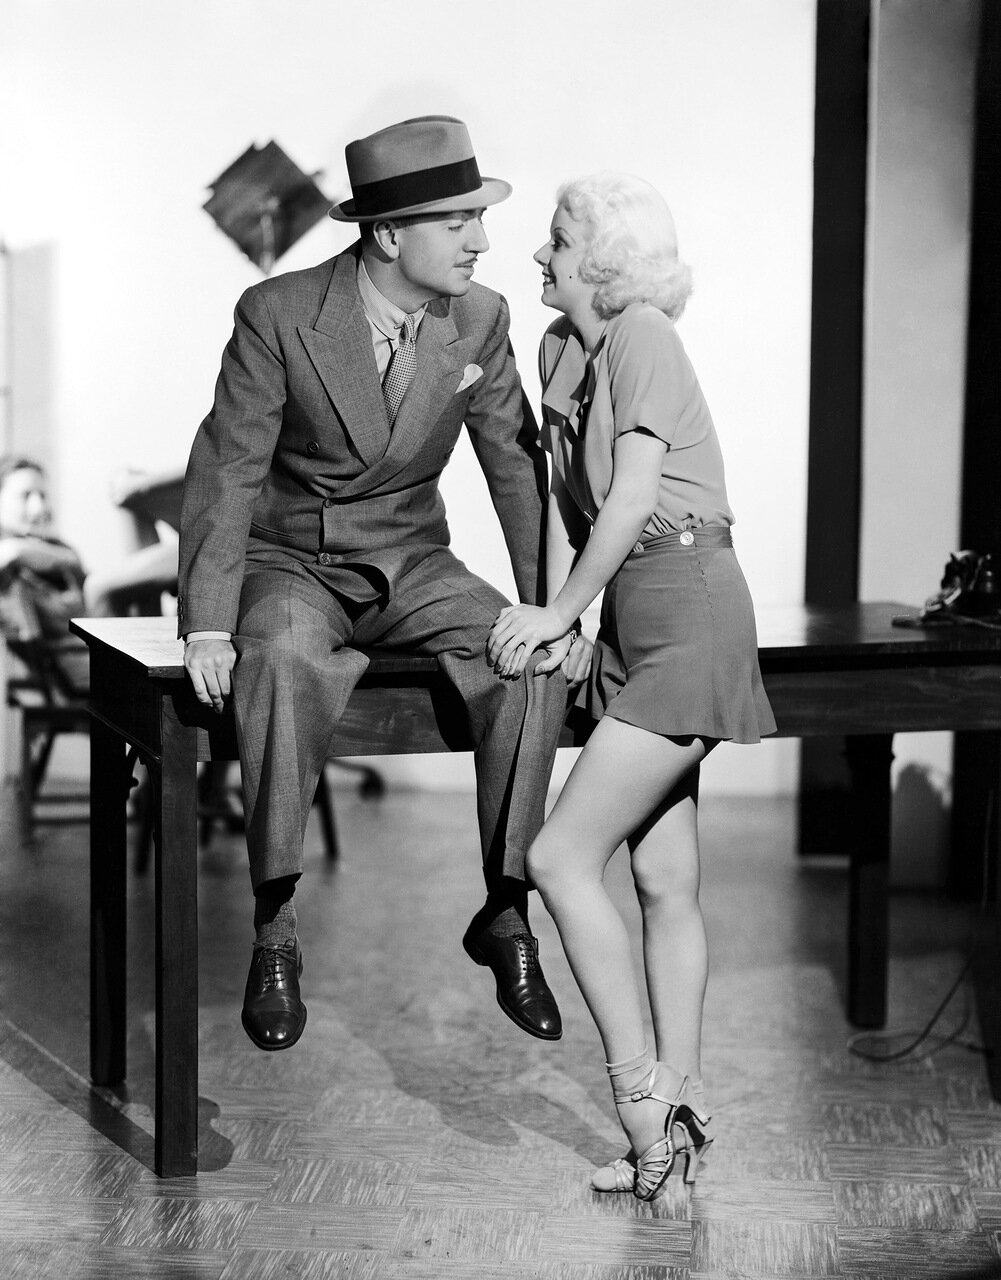 24th January 1935: Jean Harlow (1911-1937), wearing flared shorts and a blouse, with co-star William Powell (1892-1984) during the filming of the MGM musical comedy 'Reckless'. (Photo by Clarence Sinclair Bull)